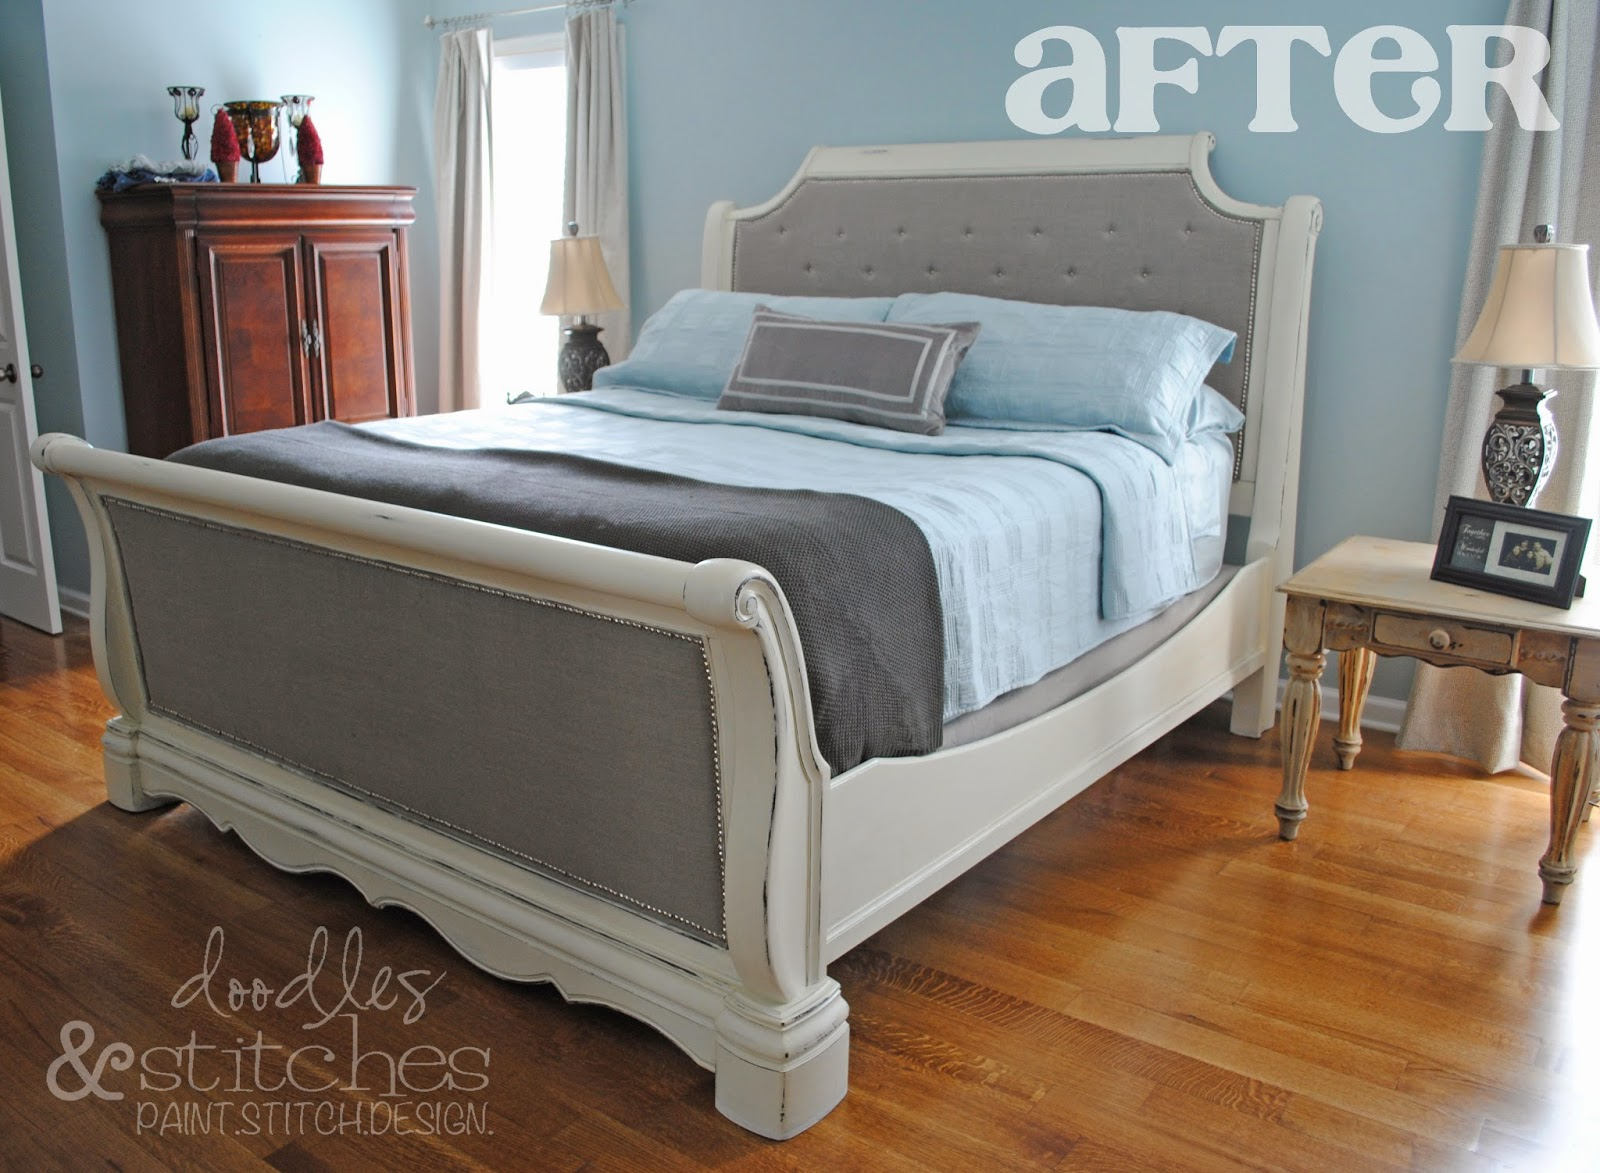 Doodles Amp Stitches Faux Tufted Bed Tutorial